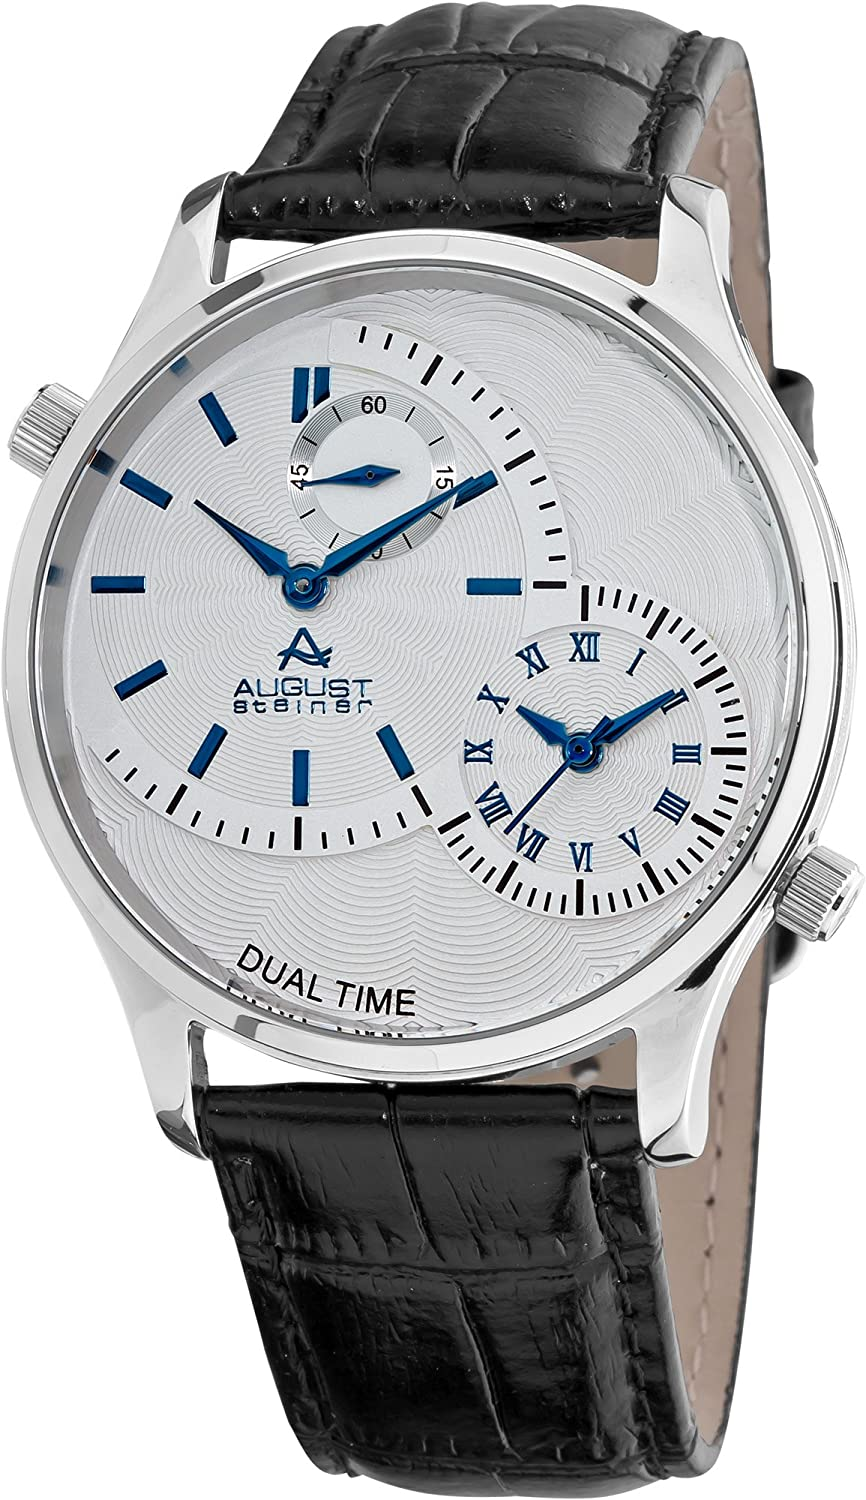 Đồng hồ August Steiner Mens ASA810BU Stainless Steel Dual Time Watch